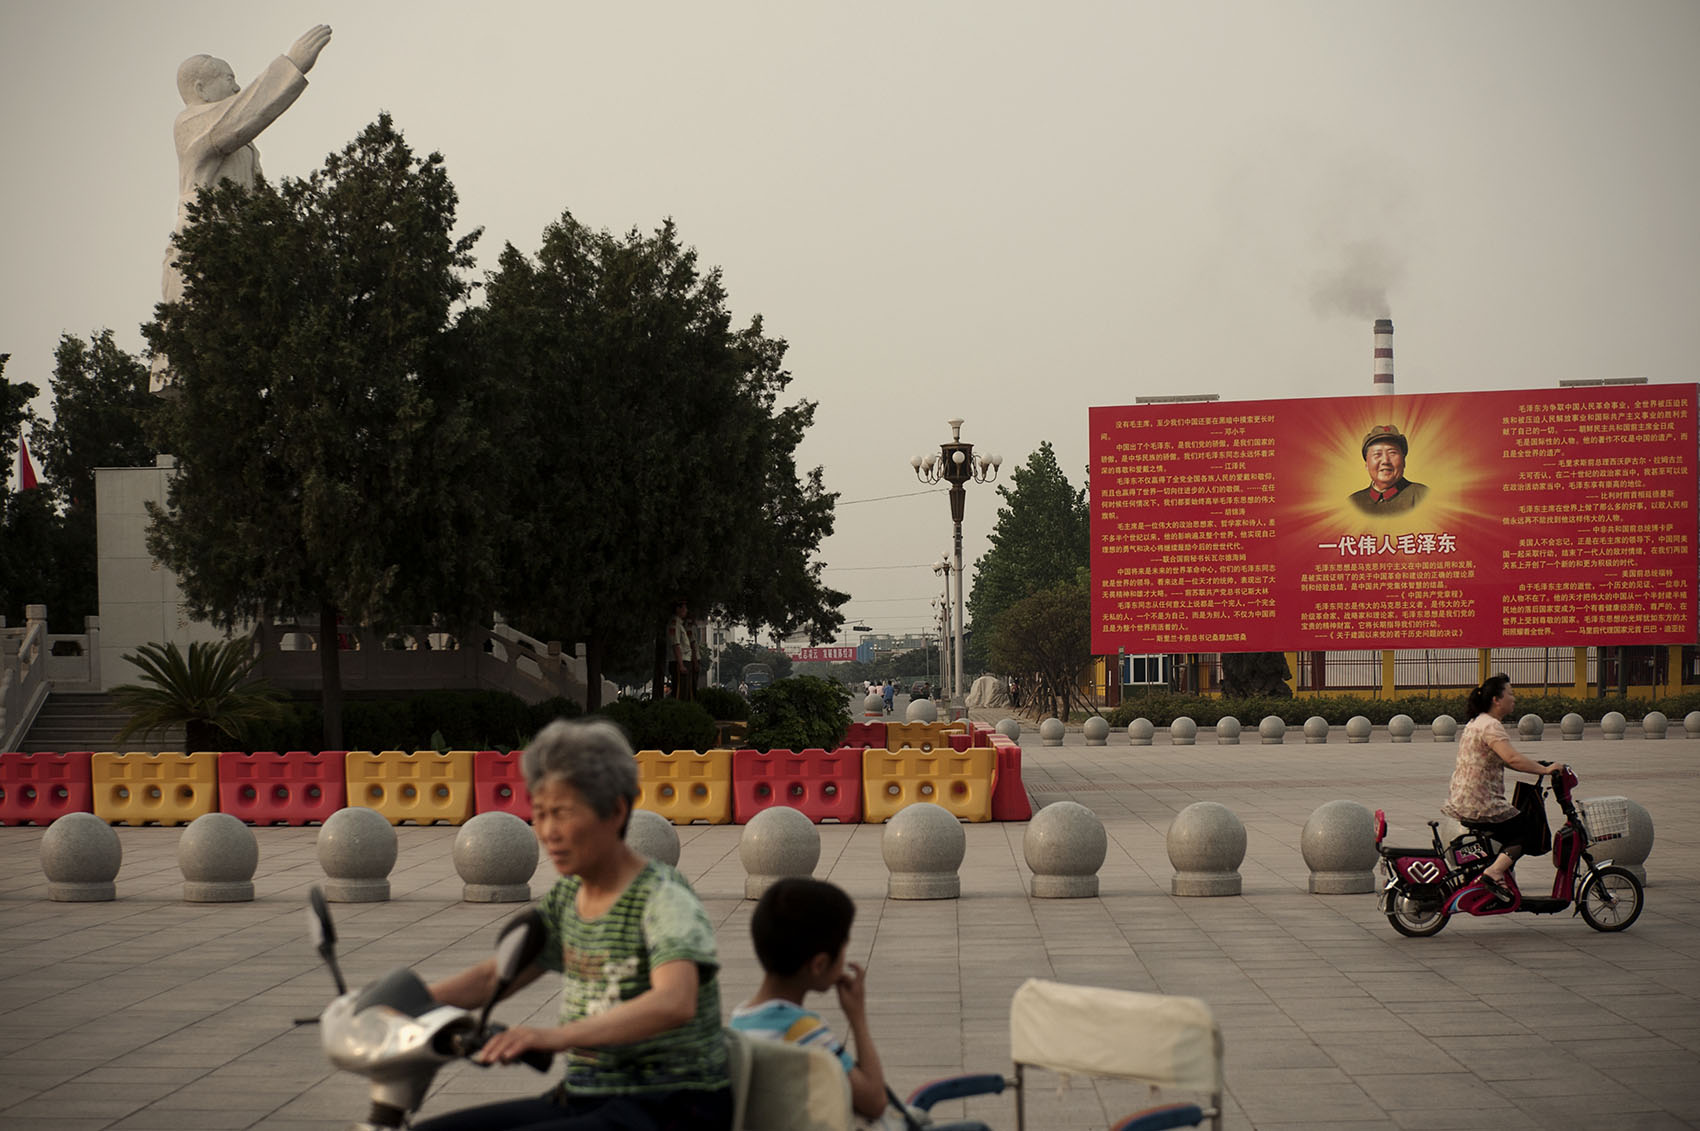 In Nanjie village, locals riding their electric bikes on the East is Red square where a statue of Mao stands his right arm raised heavenward. Nanjie in Henan Province still works as a commune. The city's Party Secretary wants Nanjie to stay true to Mao's communist ideology.